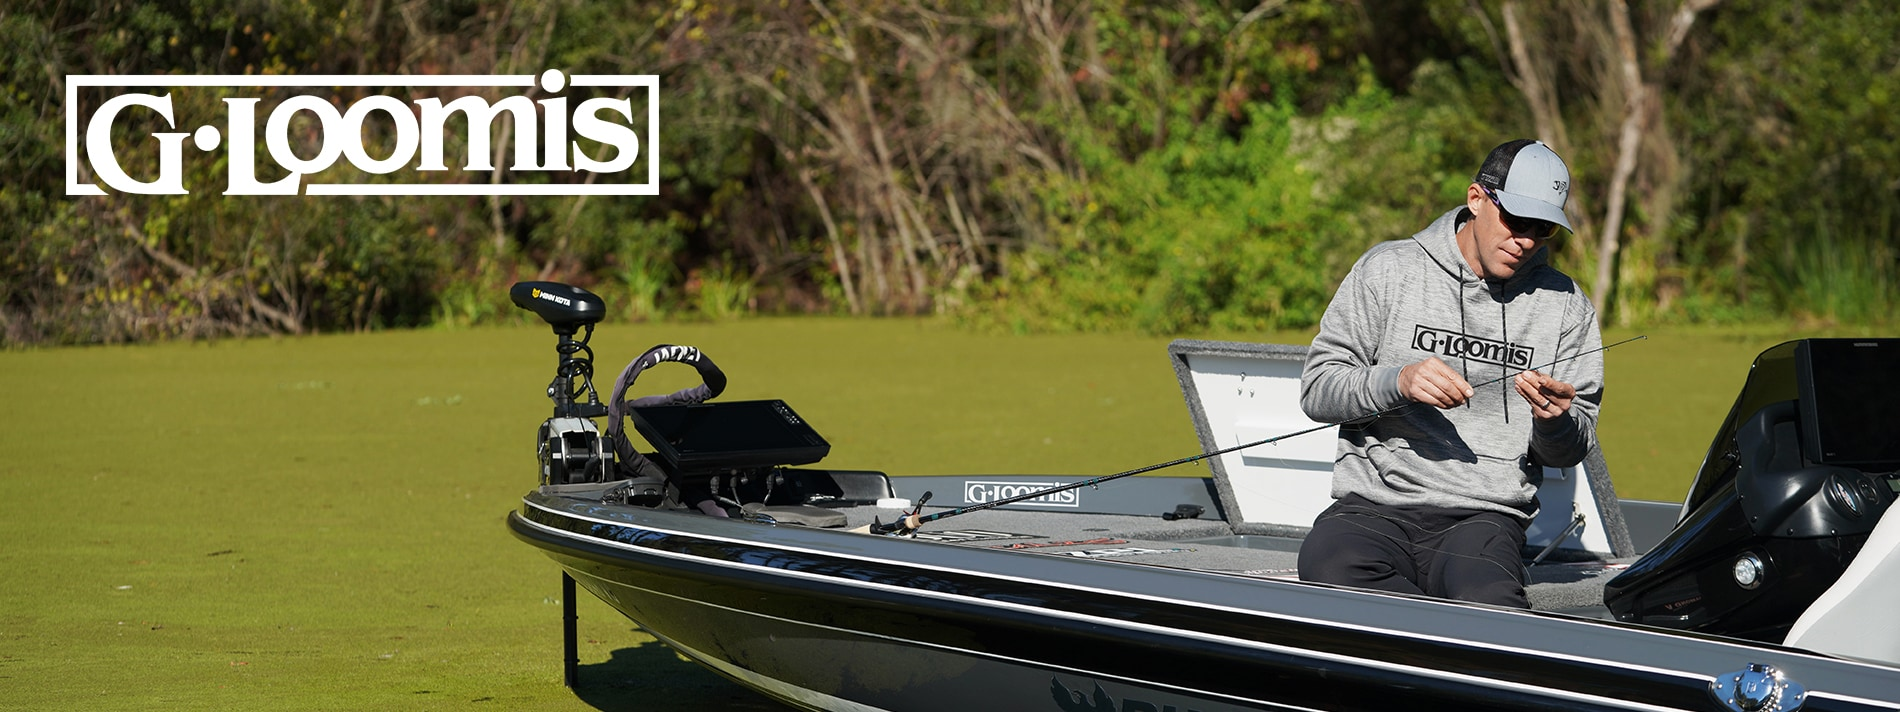 MidwayUSA is excited to announce the addition of G. Loomis fishing rods to its ever growing list of fishing gear suppliers.  G. Loomis strives to heighten the angler experience through creating tools that expand tactical opportunity, boost erffectiveness, and enhance natural ability.  MidwayUSA Customers are serious about their hobbies, and we're excited to be able to satisfy their demand for high-quality fishing gear.  To view the extensive product offering from G. Loomis, visit https://www.midwayusa.com/gloomis/b?bid=1101563  About MidwayUSA  Both country kids from Missouri, Larry and Brenda Potterfield turned their passion for shooting sports into a career by opening a small gun shop in 1977 that would eventually become MidwayUSA (www.midwayusa.com).  They instilled family values like honesty, integrity and respect for others into the business, and strive to maintain this culture with each Employee added to their growing team. For 42 years, MidwayUSA has maintained an unyielding focus on Customer Satisfaction and continues to offer JUST ABOUT EVERYTHING® for Shooting, Hunting and the Outdoors.